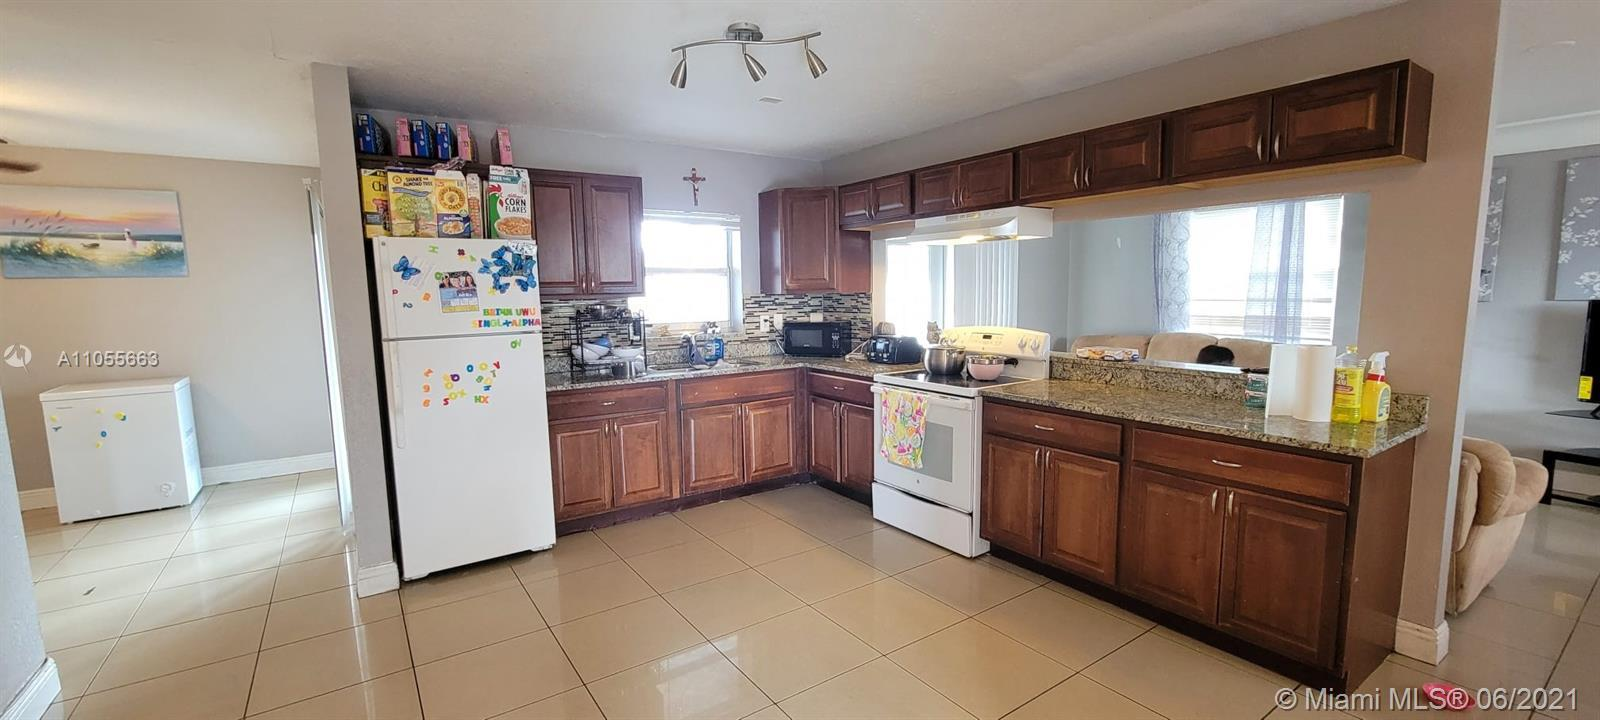 House ready to move in  Updated Kitchen Large Tile throught the wntire house  amazing backyard p